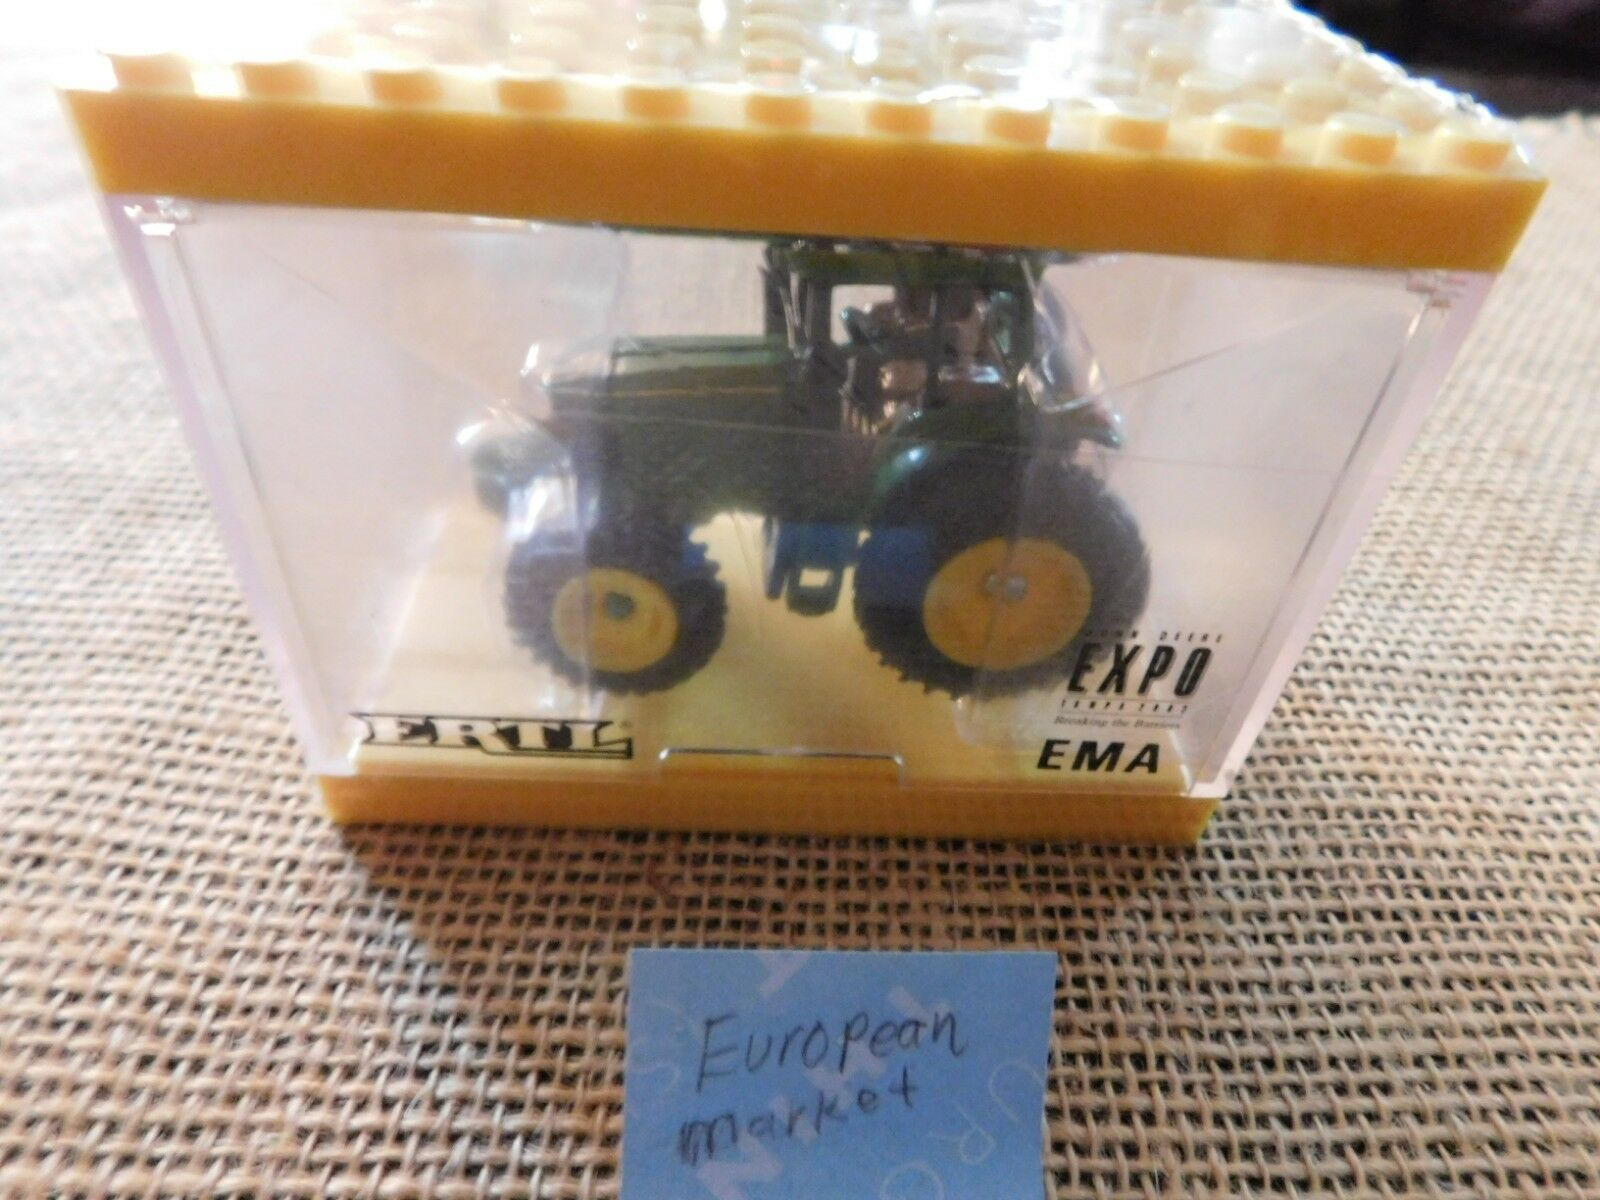 John Deere RARE 6320 tractor in a Lego Display case EMA Expo Tampa 2002